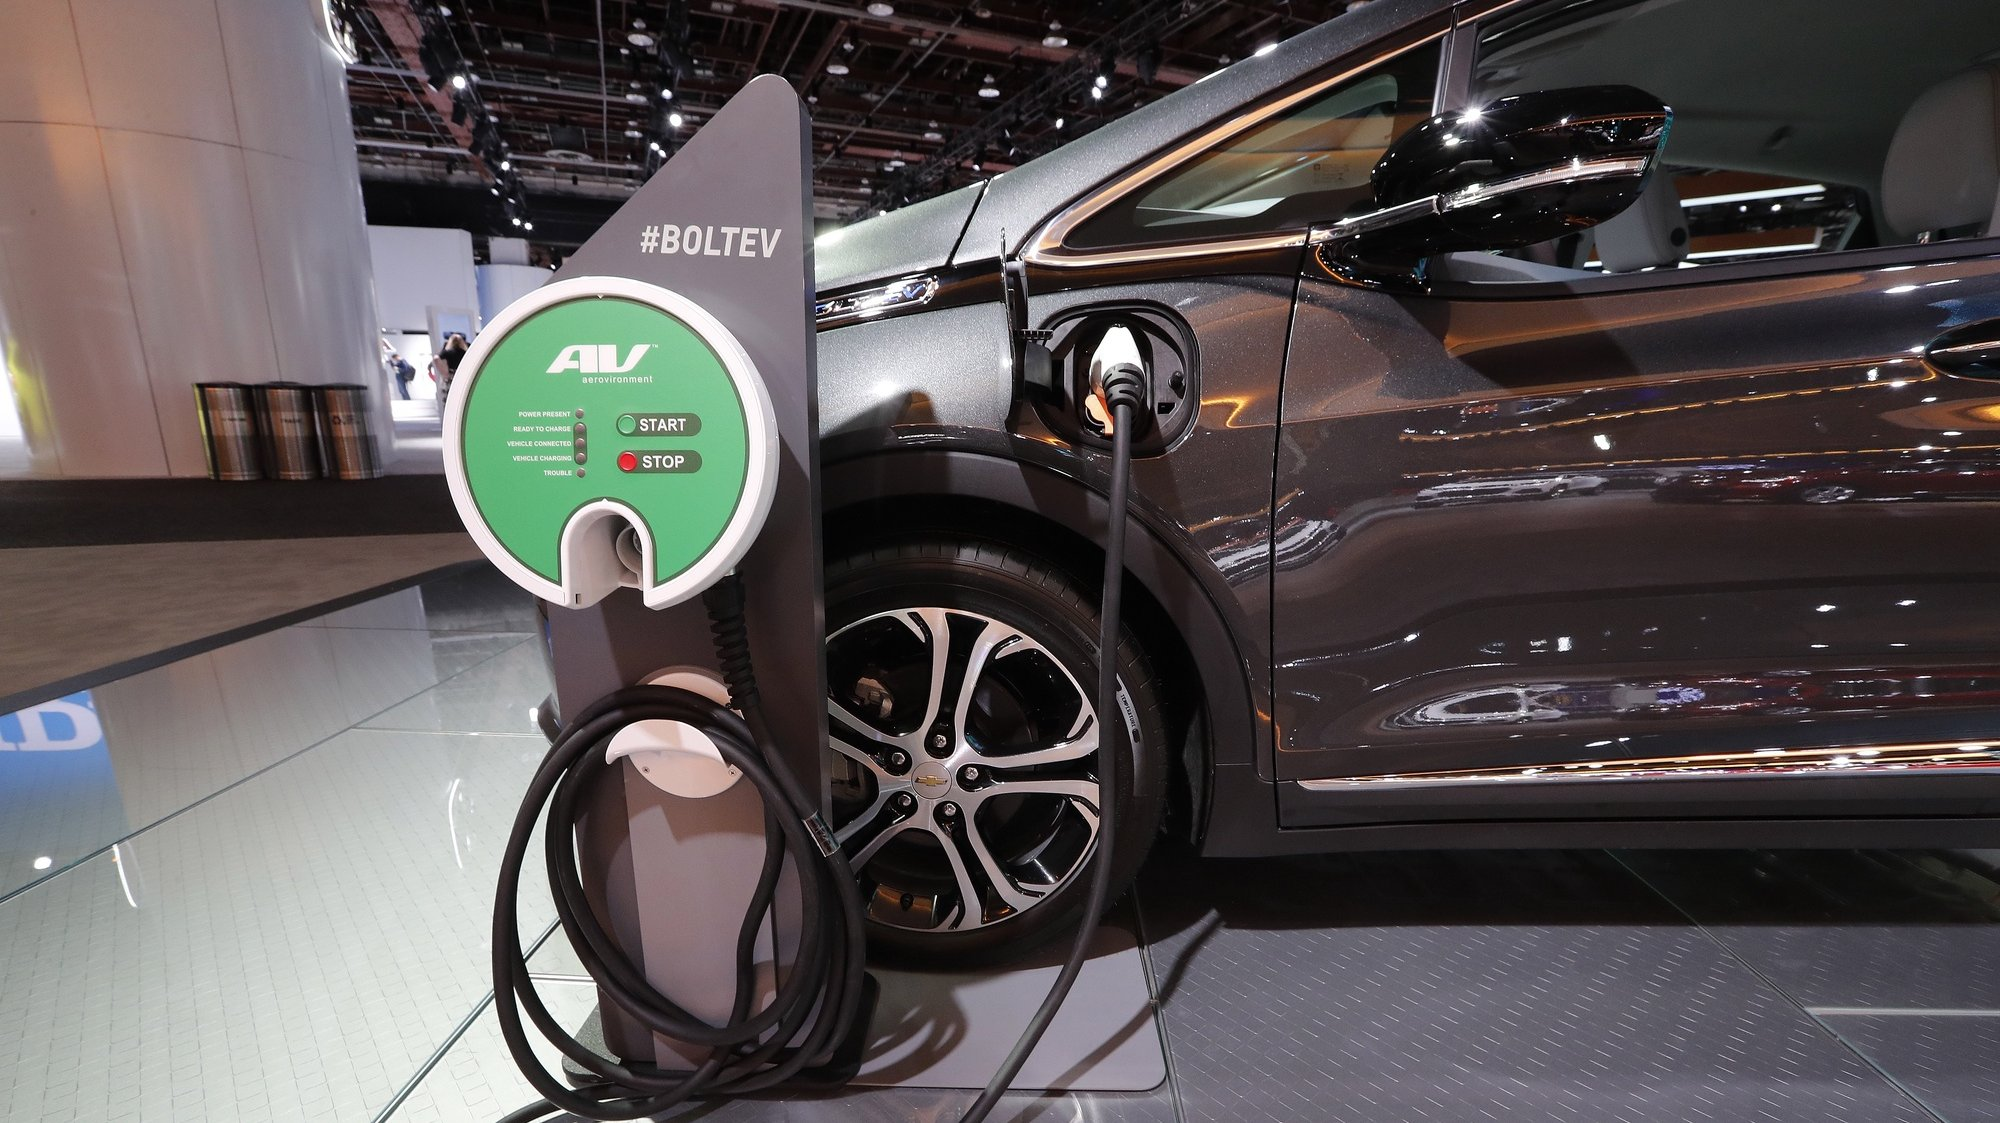 epa07287103 A Chevrolet Bolt EV electric car and electric fuel station at the North American International Auto Show at Cobo Center in Detroit, Michigan, USA, 15 January 2019. The show offers media previews of vehicles and technologies before opening to the public on 19 January.  EPA/JOHN G. MABANGLO